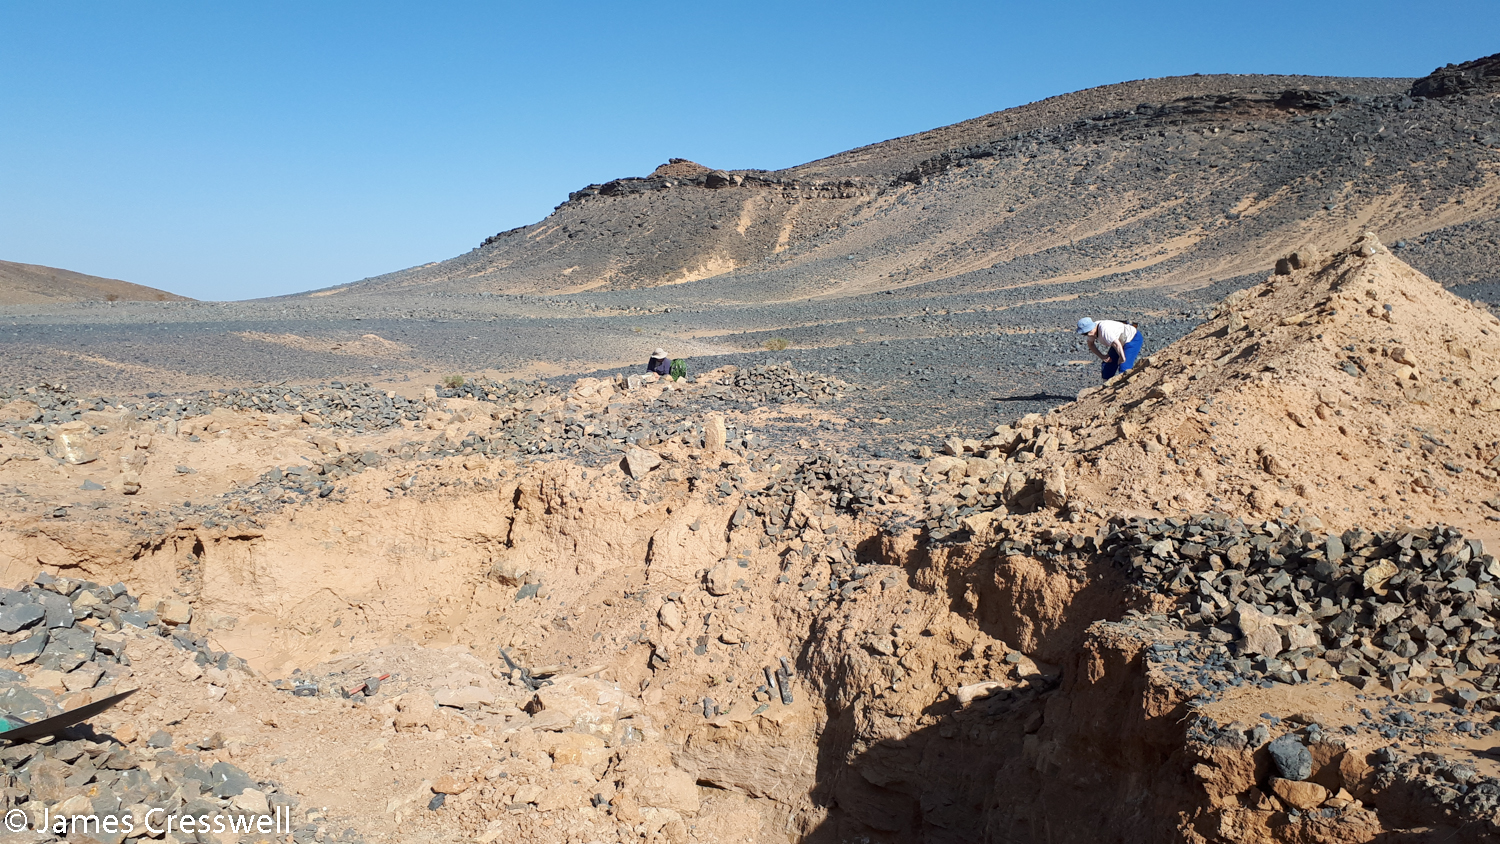 People looking for fossils in a desert landscape